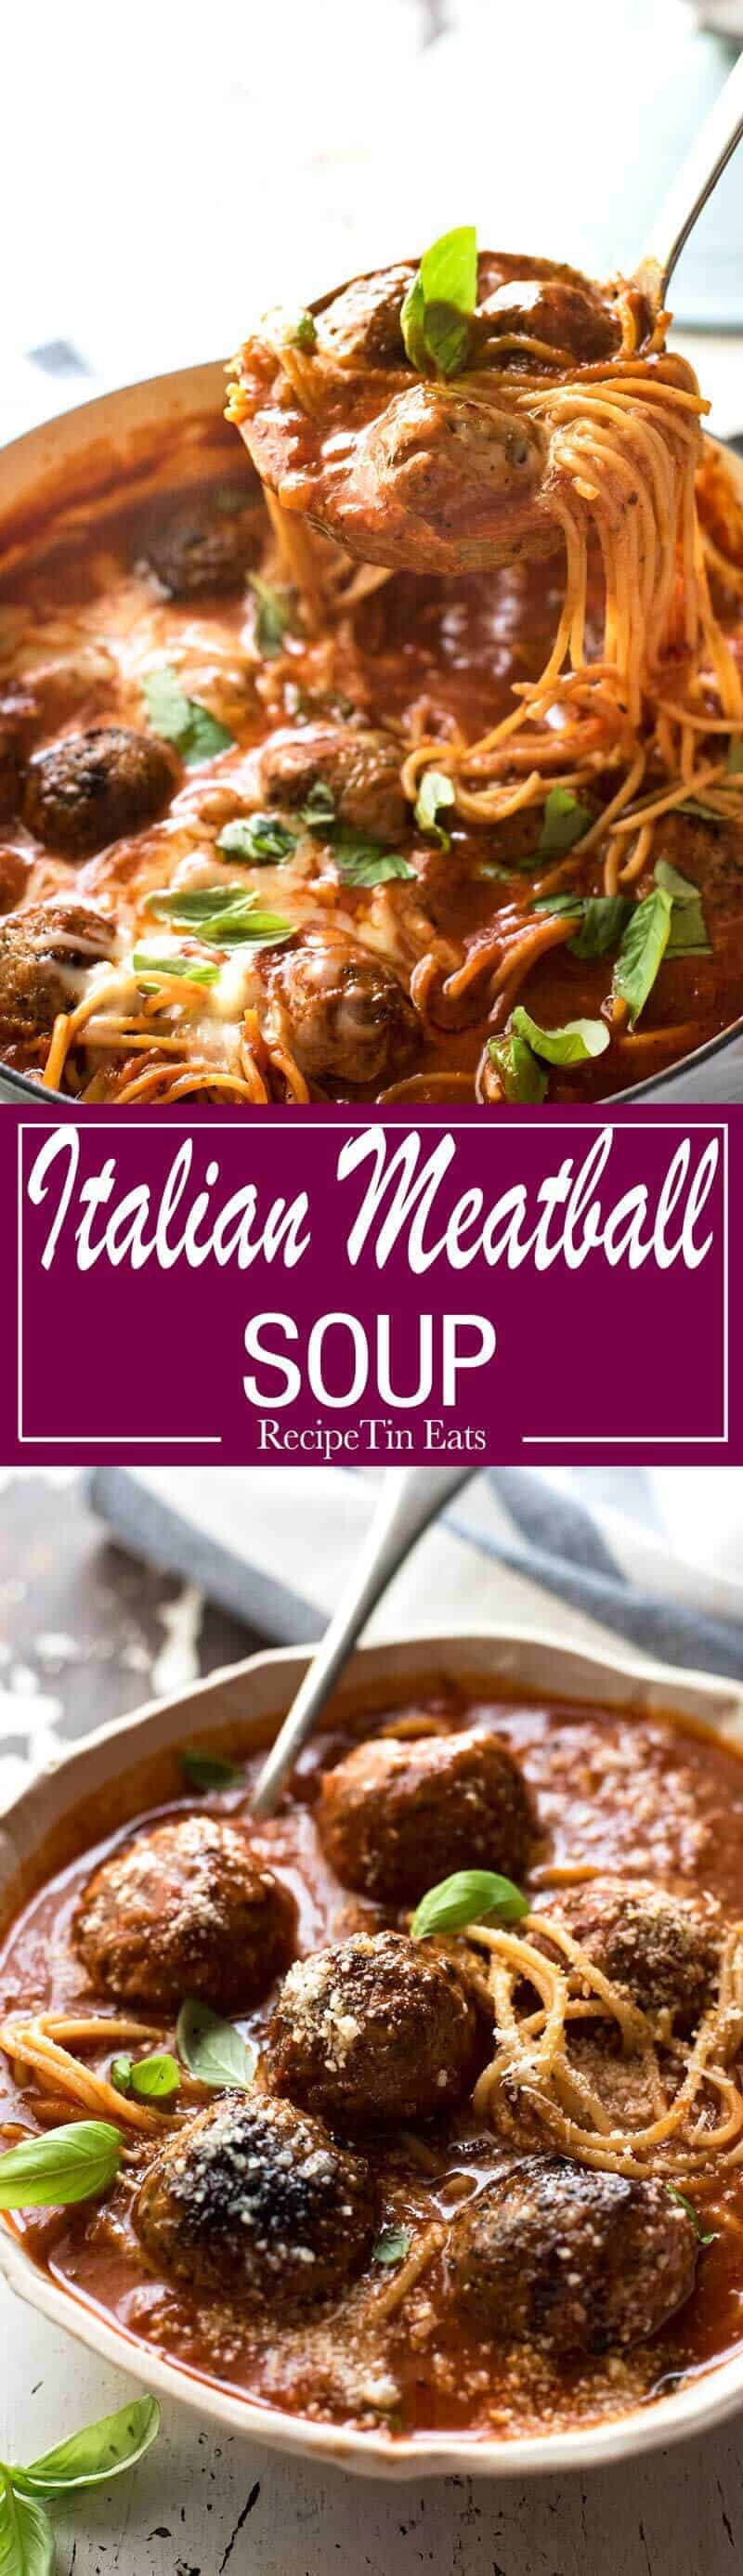 Italian Meatball Soup - Extra juicy, soft & tasty meatballs in a tomato spaghetti soup, all made in one pot! recipetineats.com